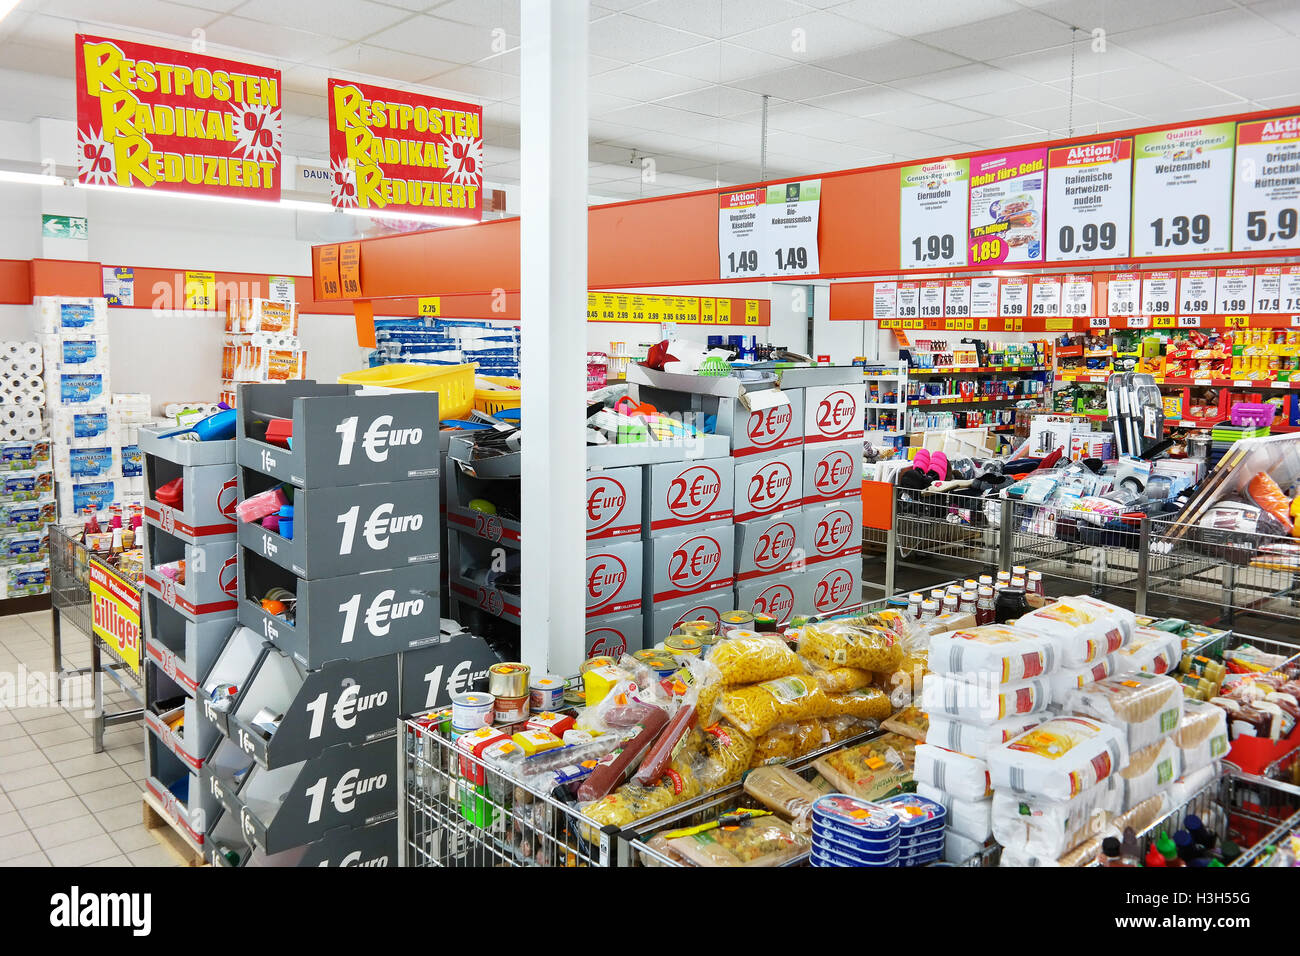 Interior of a Norma discount supermarket. - Stock Image